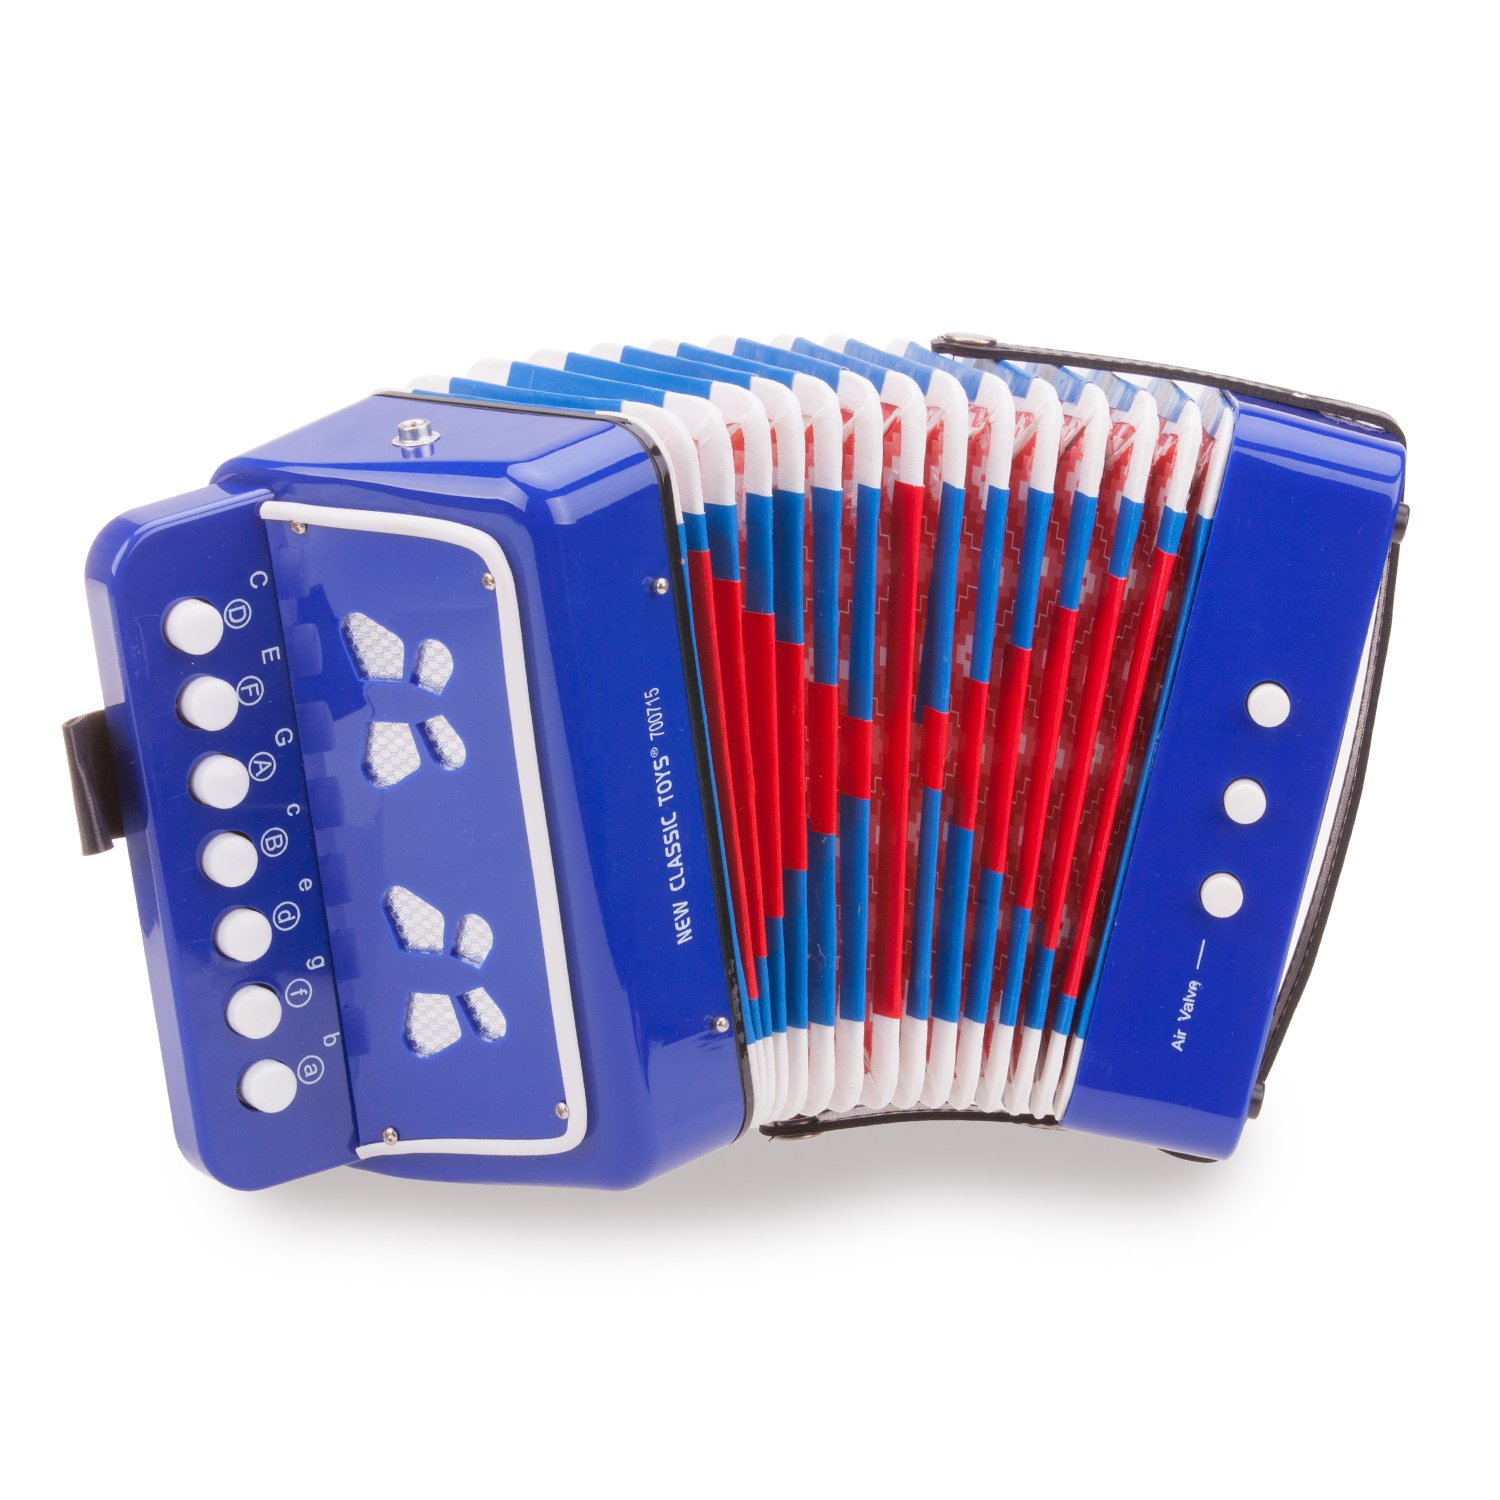 New Classic Toys - 10056 - Musical Toy Instruments - Accordion with Music Book - Blue by New Classic Toys